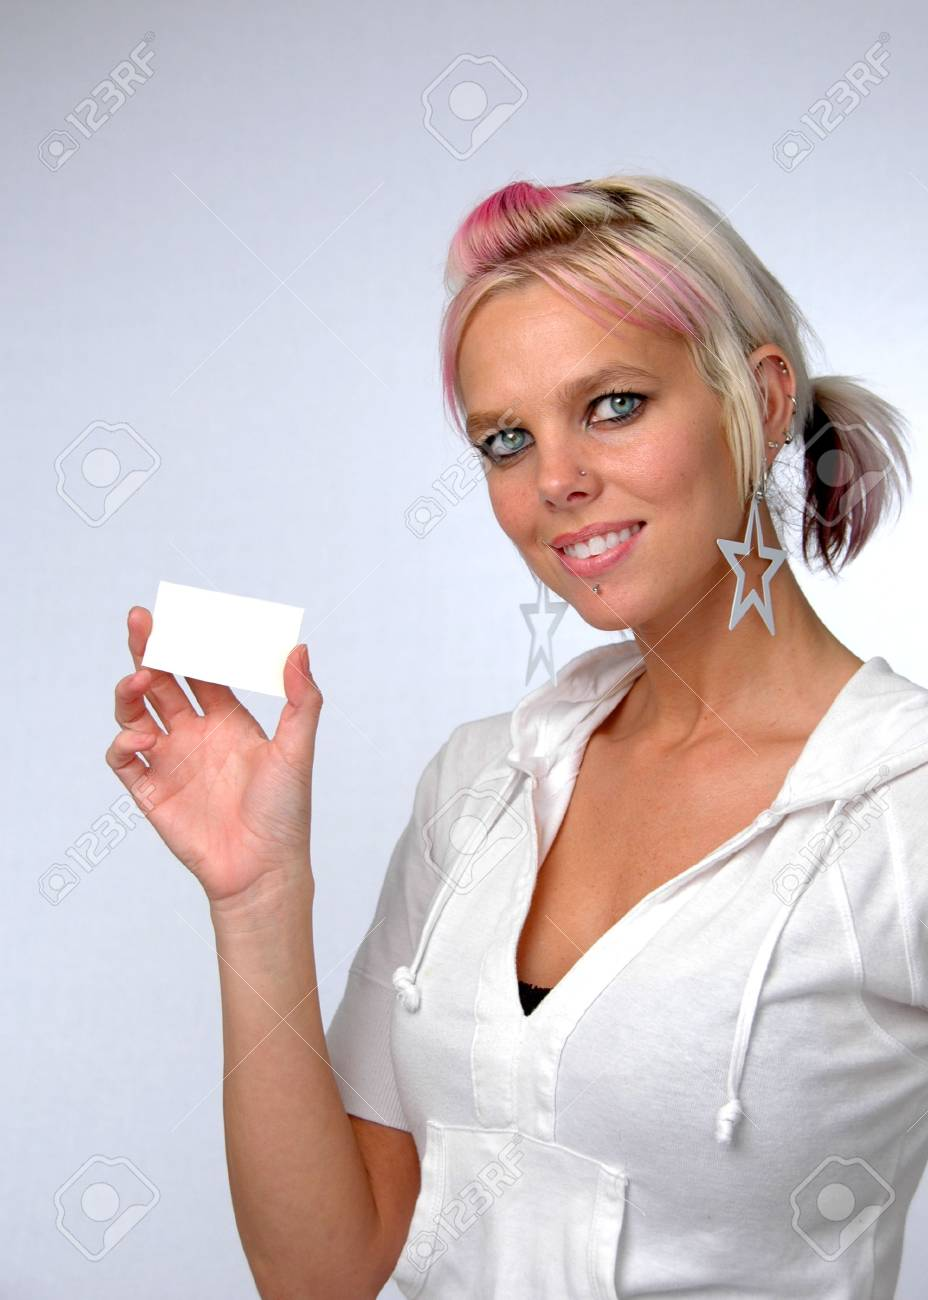 Young beautiful woman showing card. Add your own credit card or business card. Stock Photo - 1788558